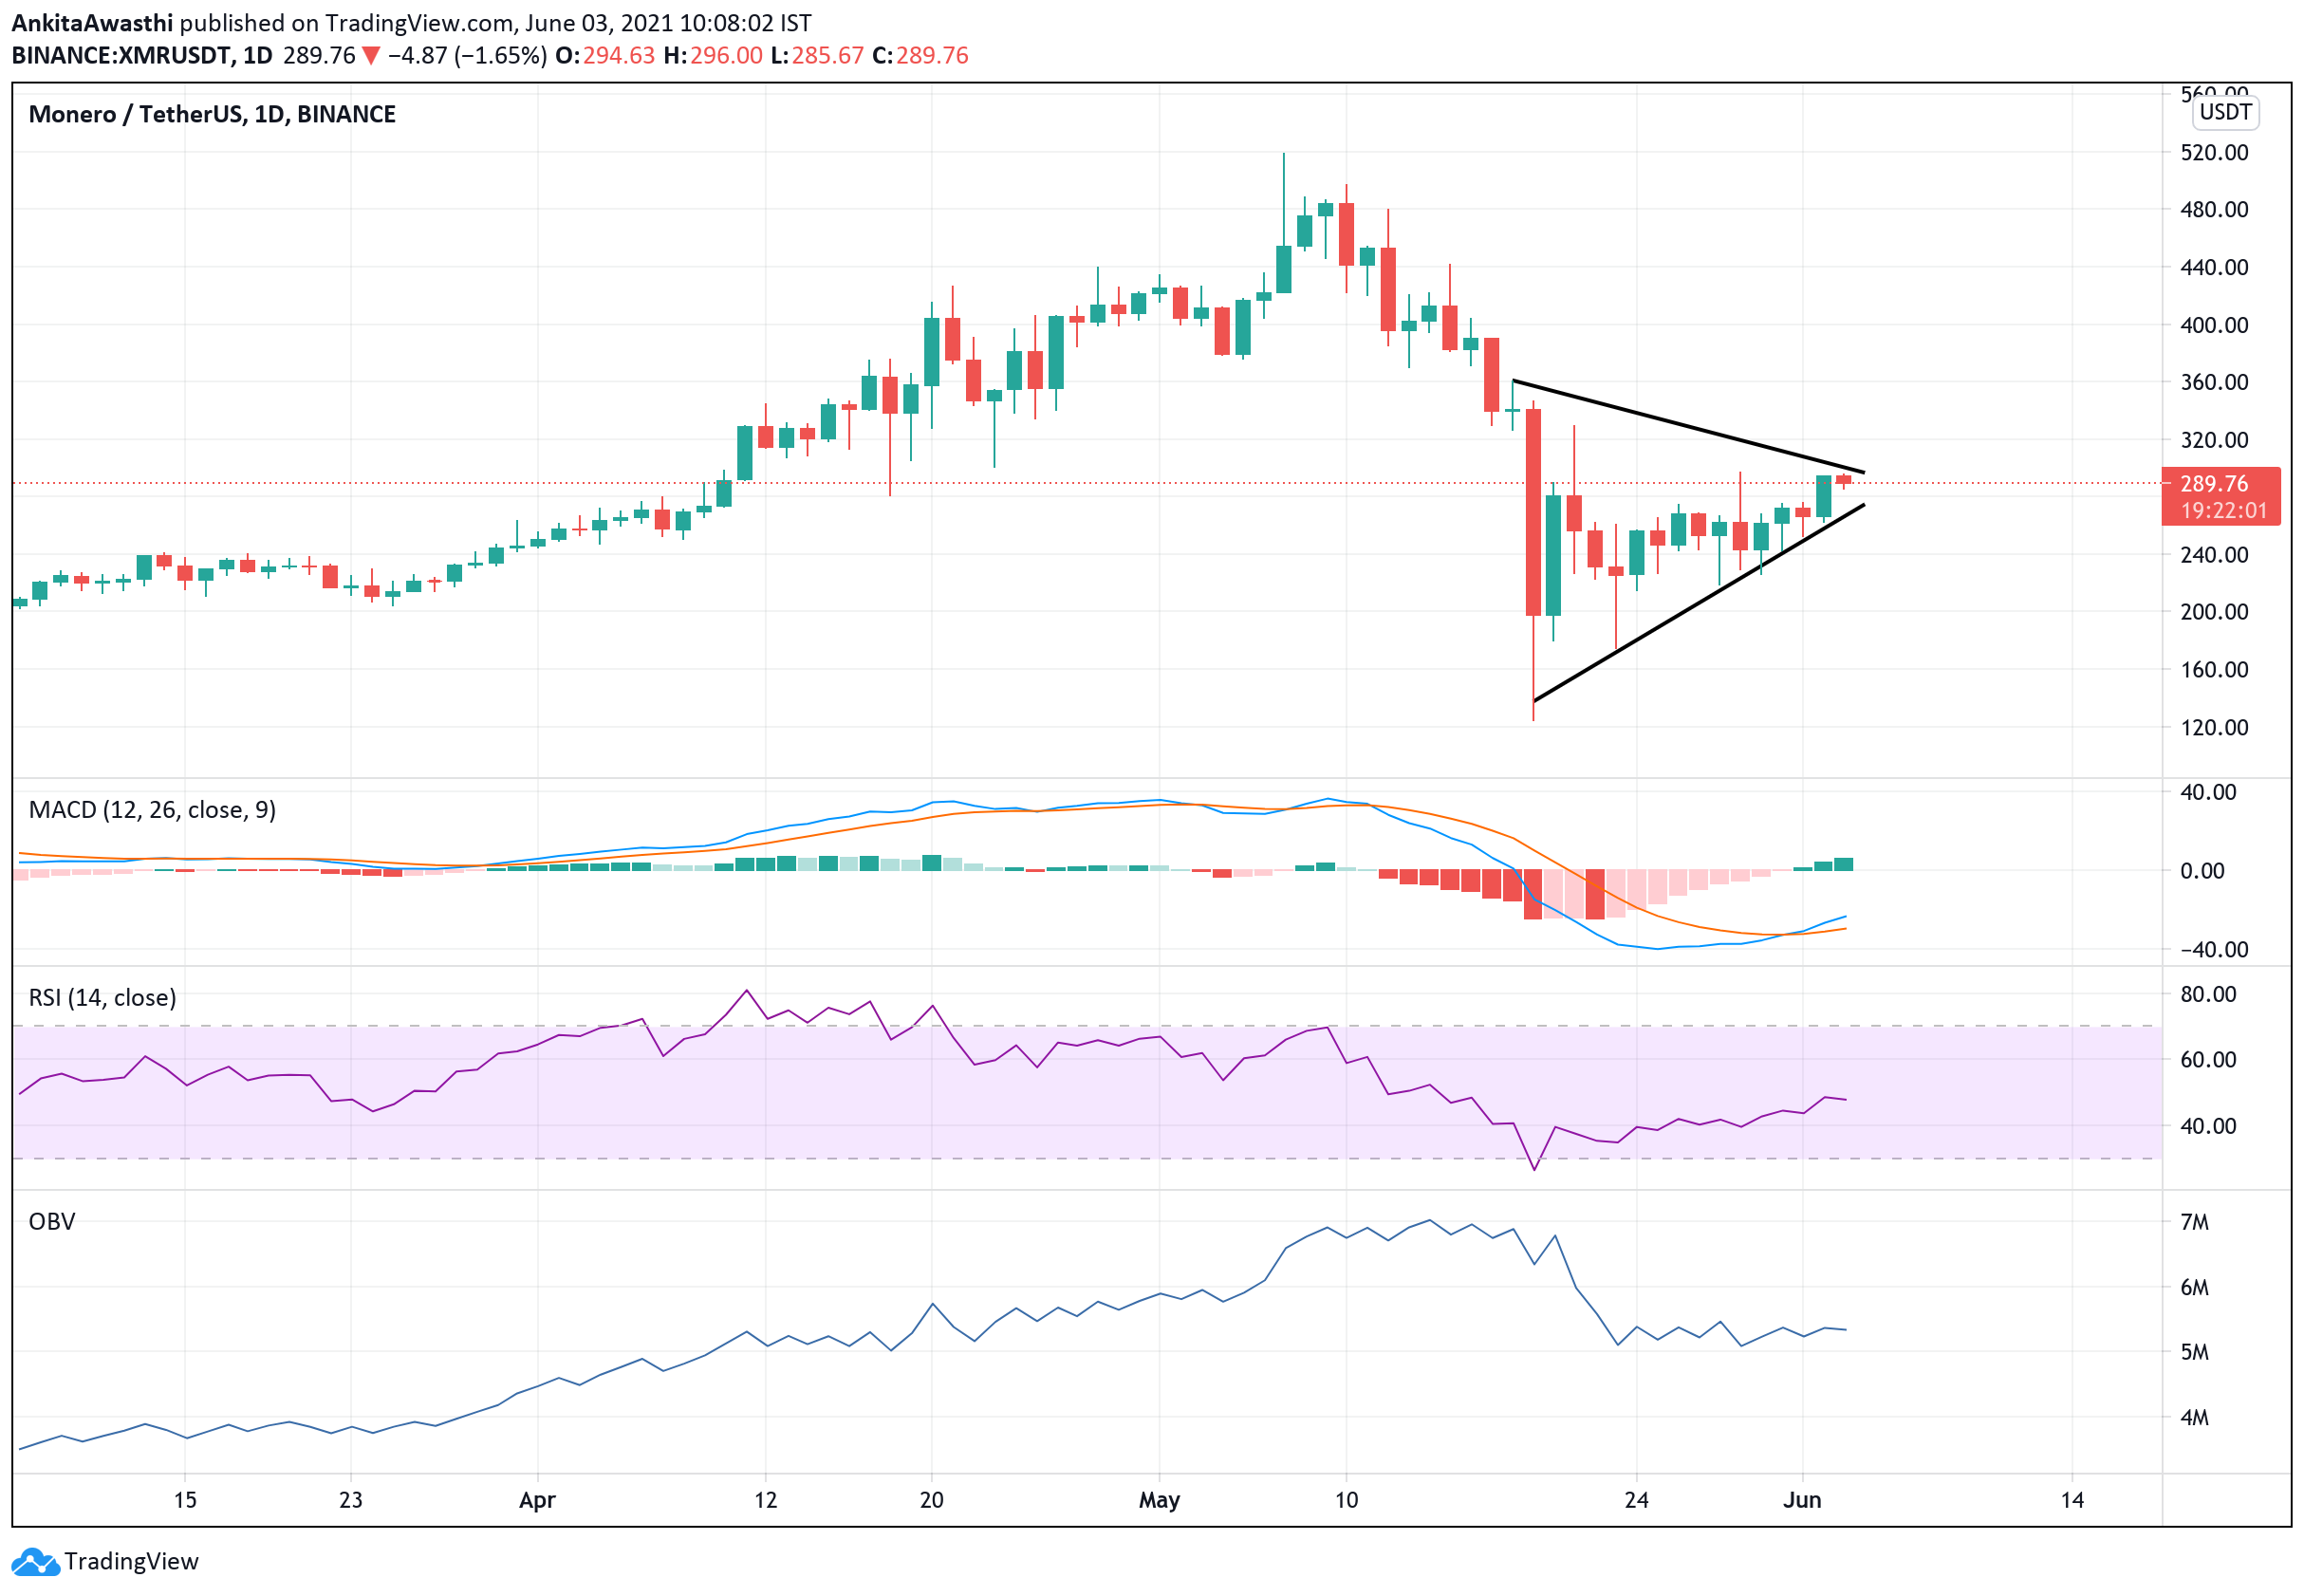 https://platoblockchain.net/wp-content/uploads/2021/06/xmr-technical-analysis-price-likely-to-fall-below-367-47-and-197-34.png